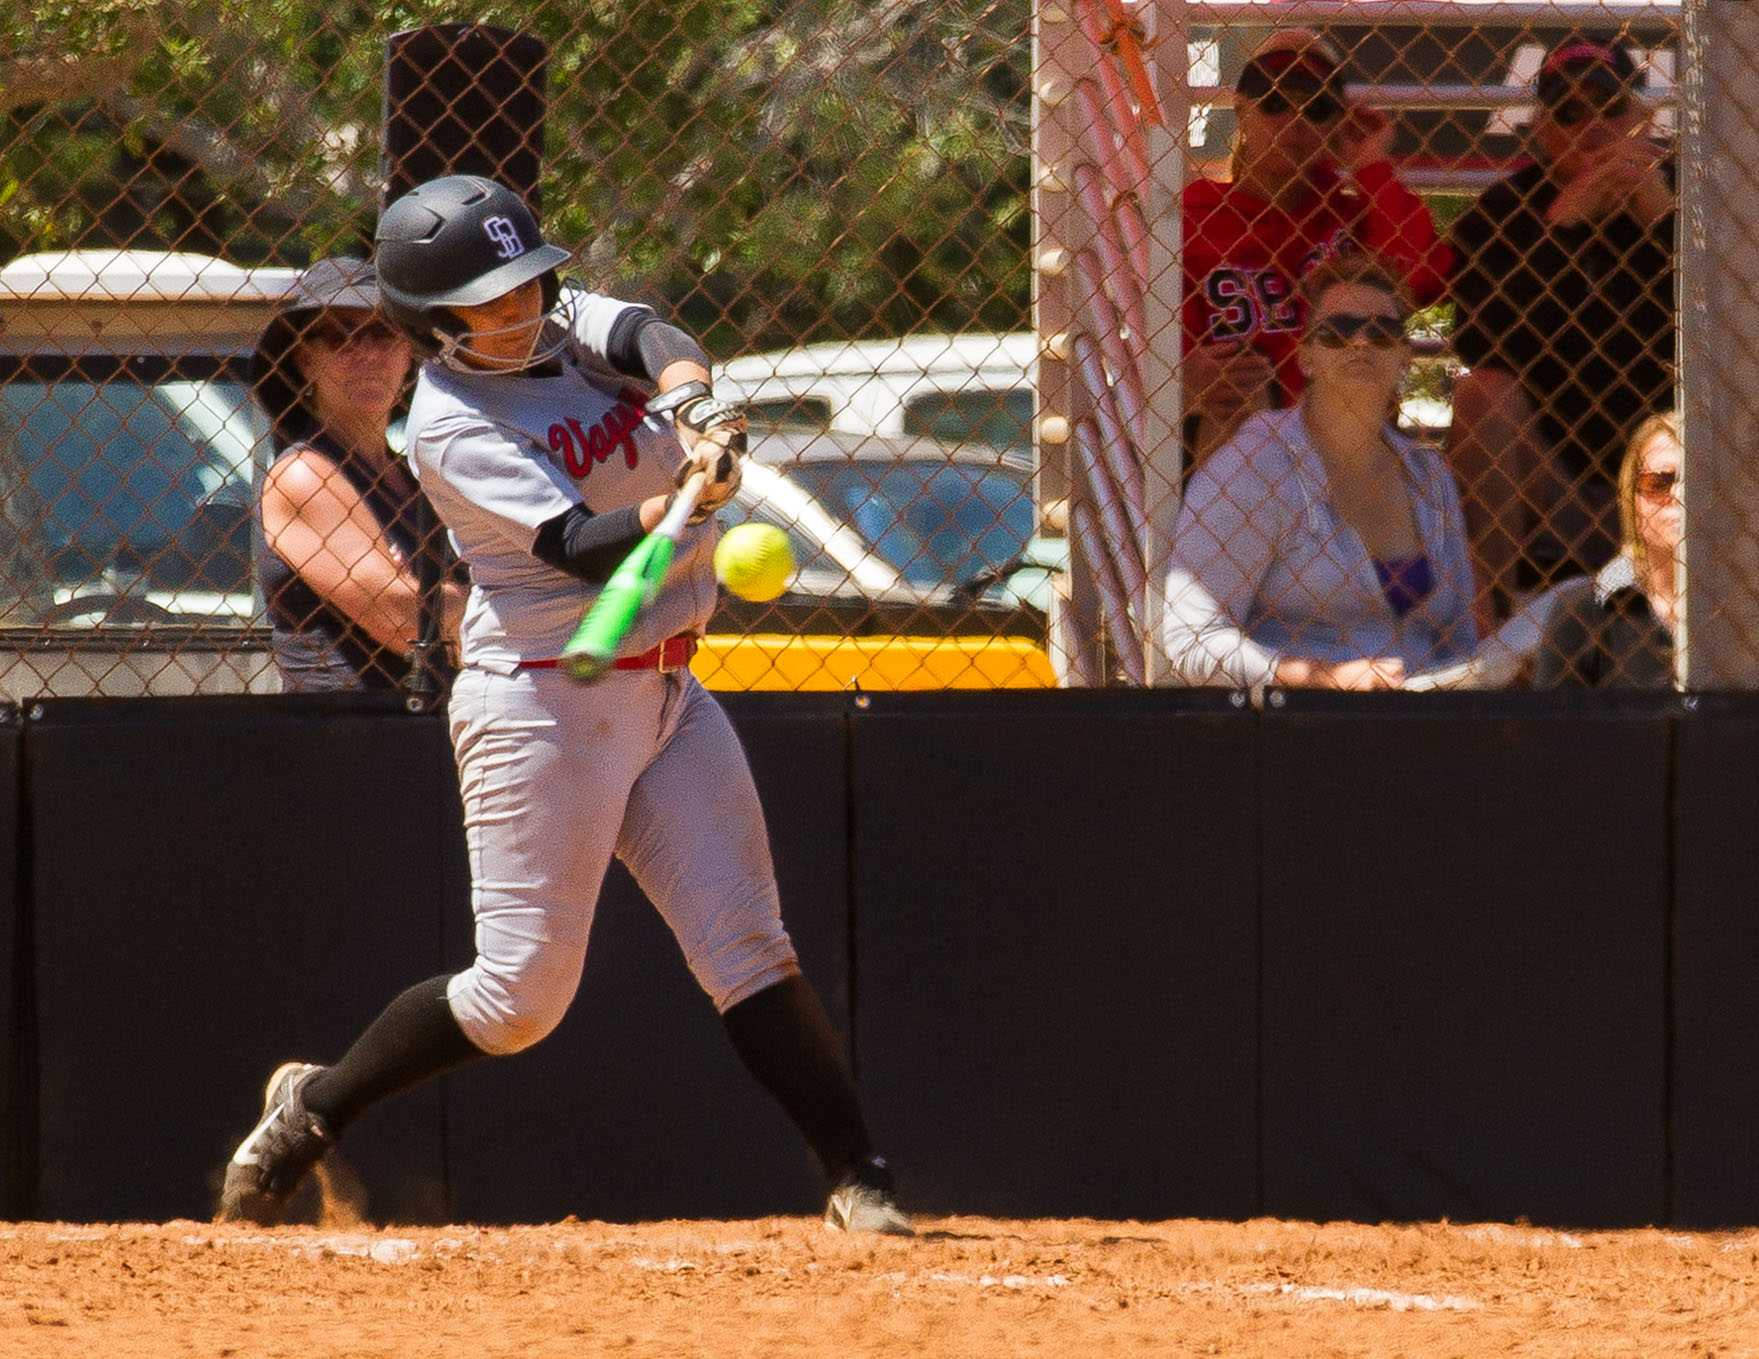 Christal Vierra gets a solid single through the left side in the second inning, on Tuesday, April 5, at Pershing Park in Santa Barbara, where the City College women's softball team hosted a double-header against Moorpark College. The Vaqueros split the double-header W (4-3), L (5-1).